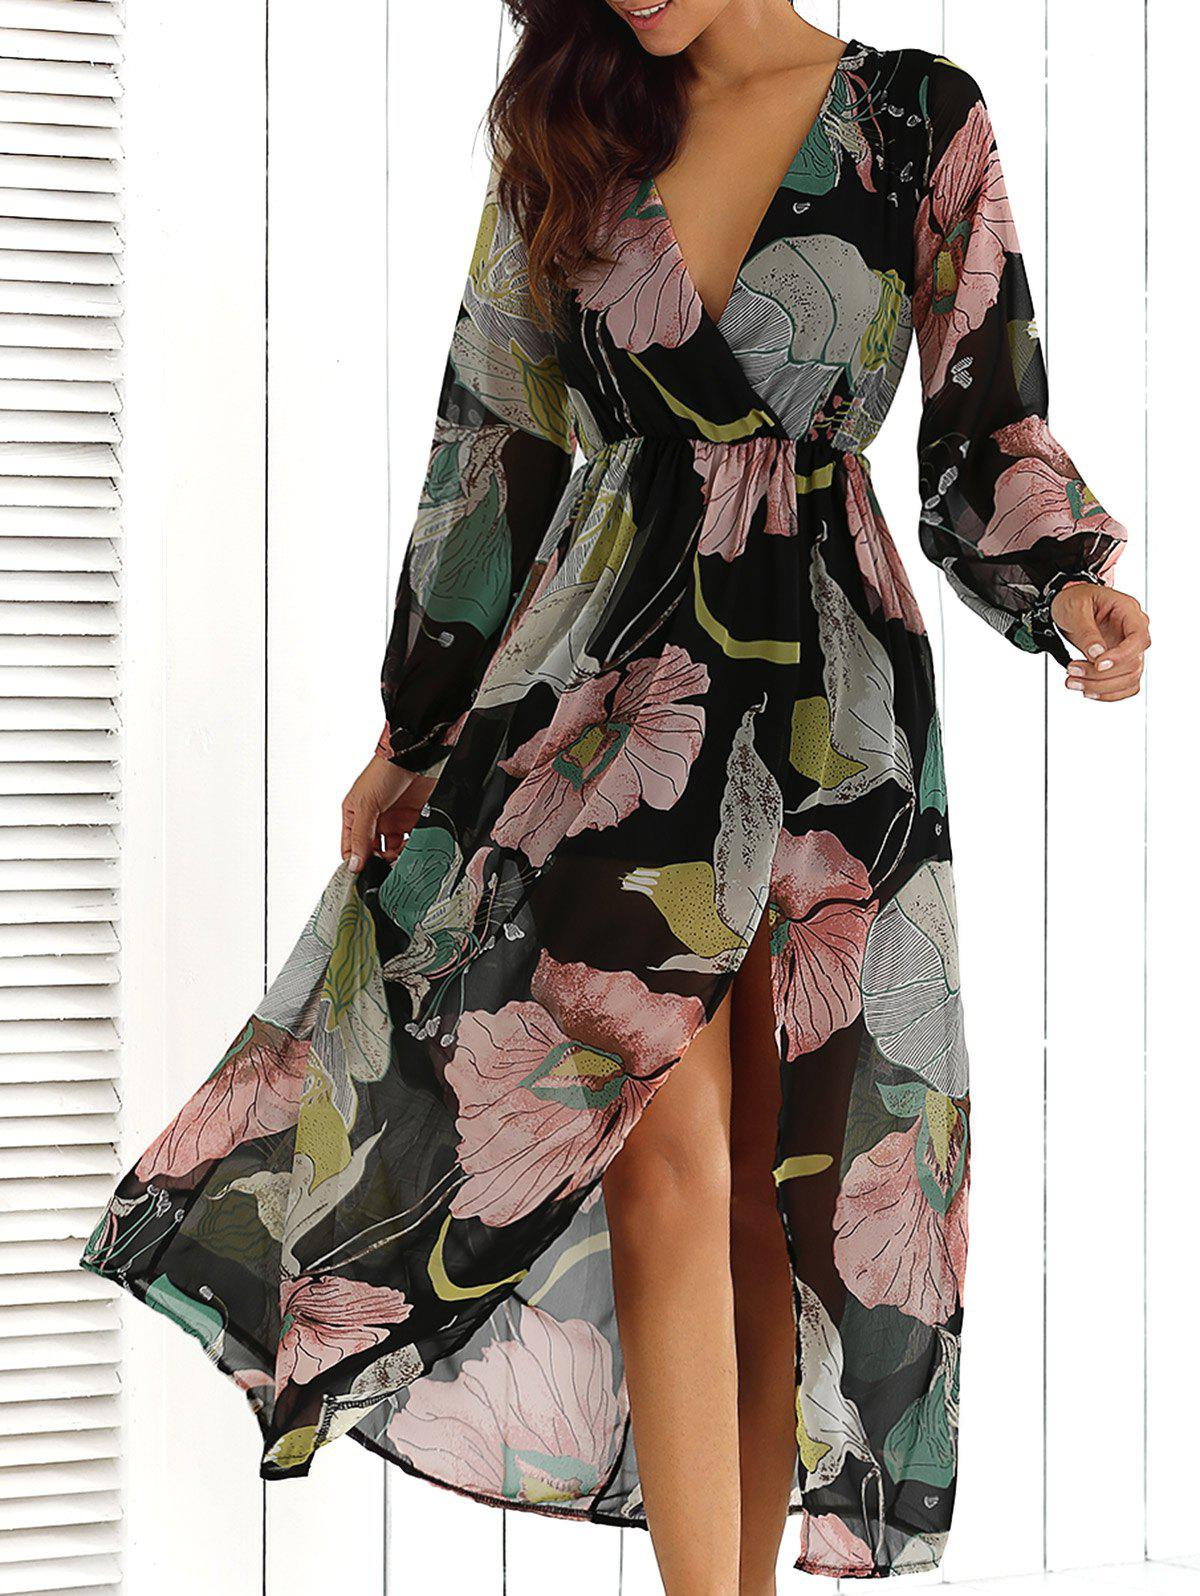 Big Flower Print V Neck Long Sleeve Maxi DressWOMEN<br><br>Size: XL; Color: FLORAL; Style: Casual; Material: Polyester; Silhouette: A-Line; Dresses Length: Ankle-Length; Neckline: V-Neck; Sleeve Length: Long Sleeves; Pattern Type: Print; Elasticity: Elastic; With Belt: No; Season: Fall,Spring; Weight: 0.2500kg; Package Contents: 1 x Dress;